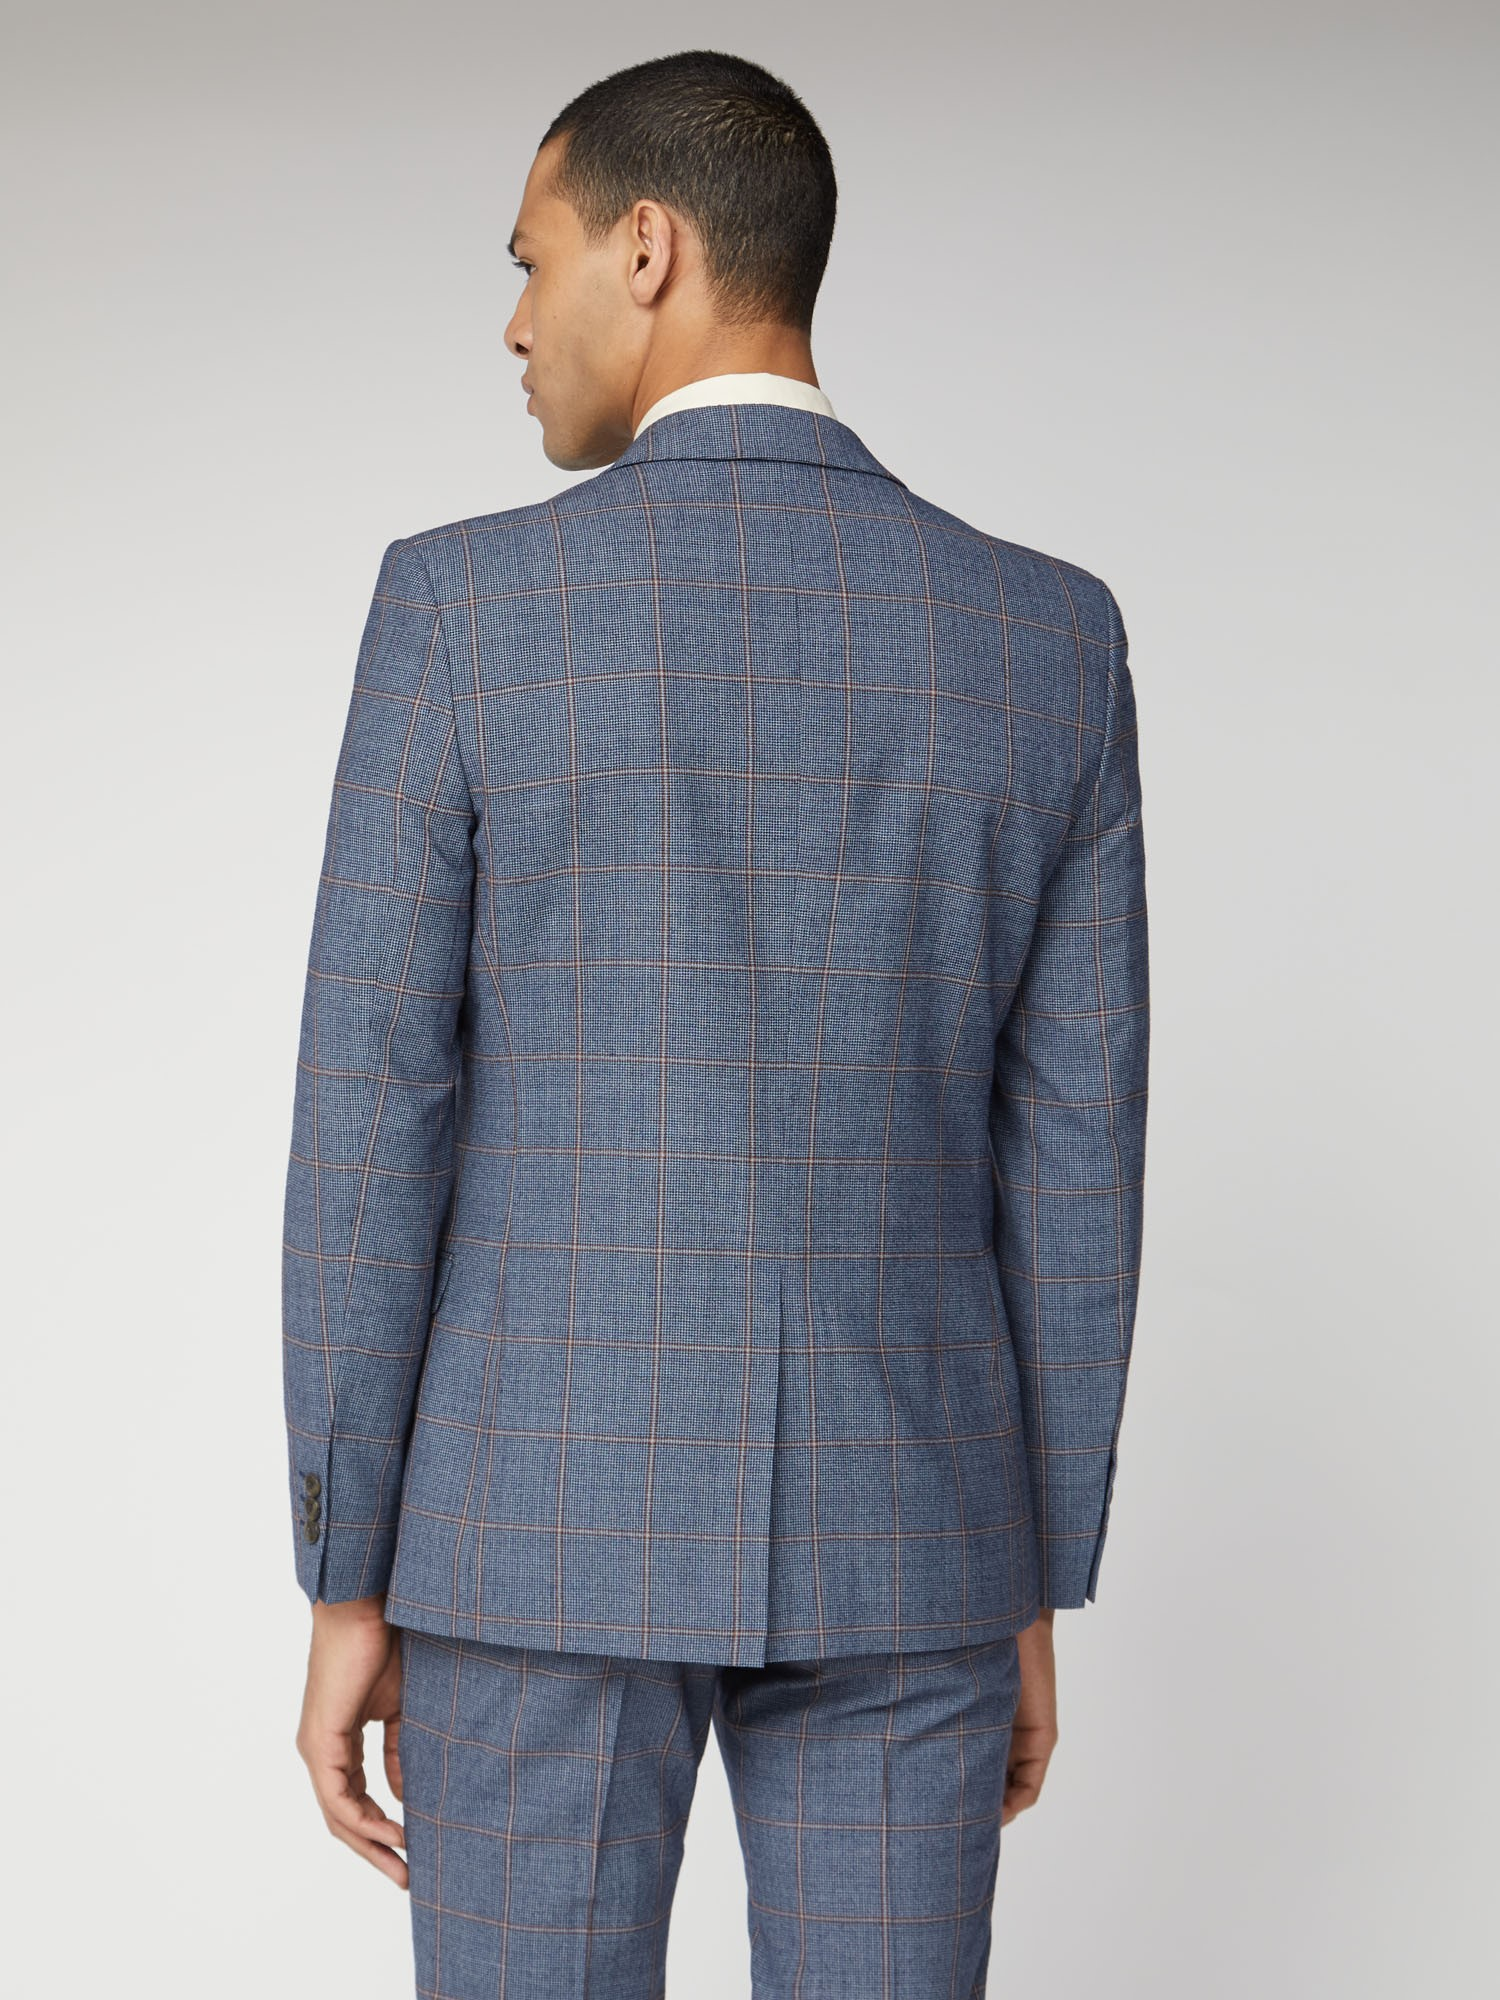 Blue Rust Windowpane Check Tailored Fit Suit Jacket